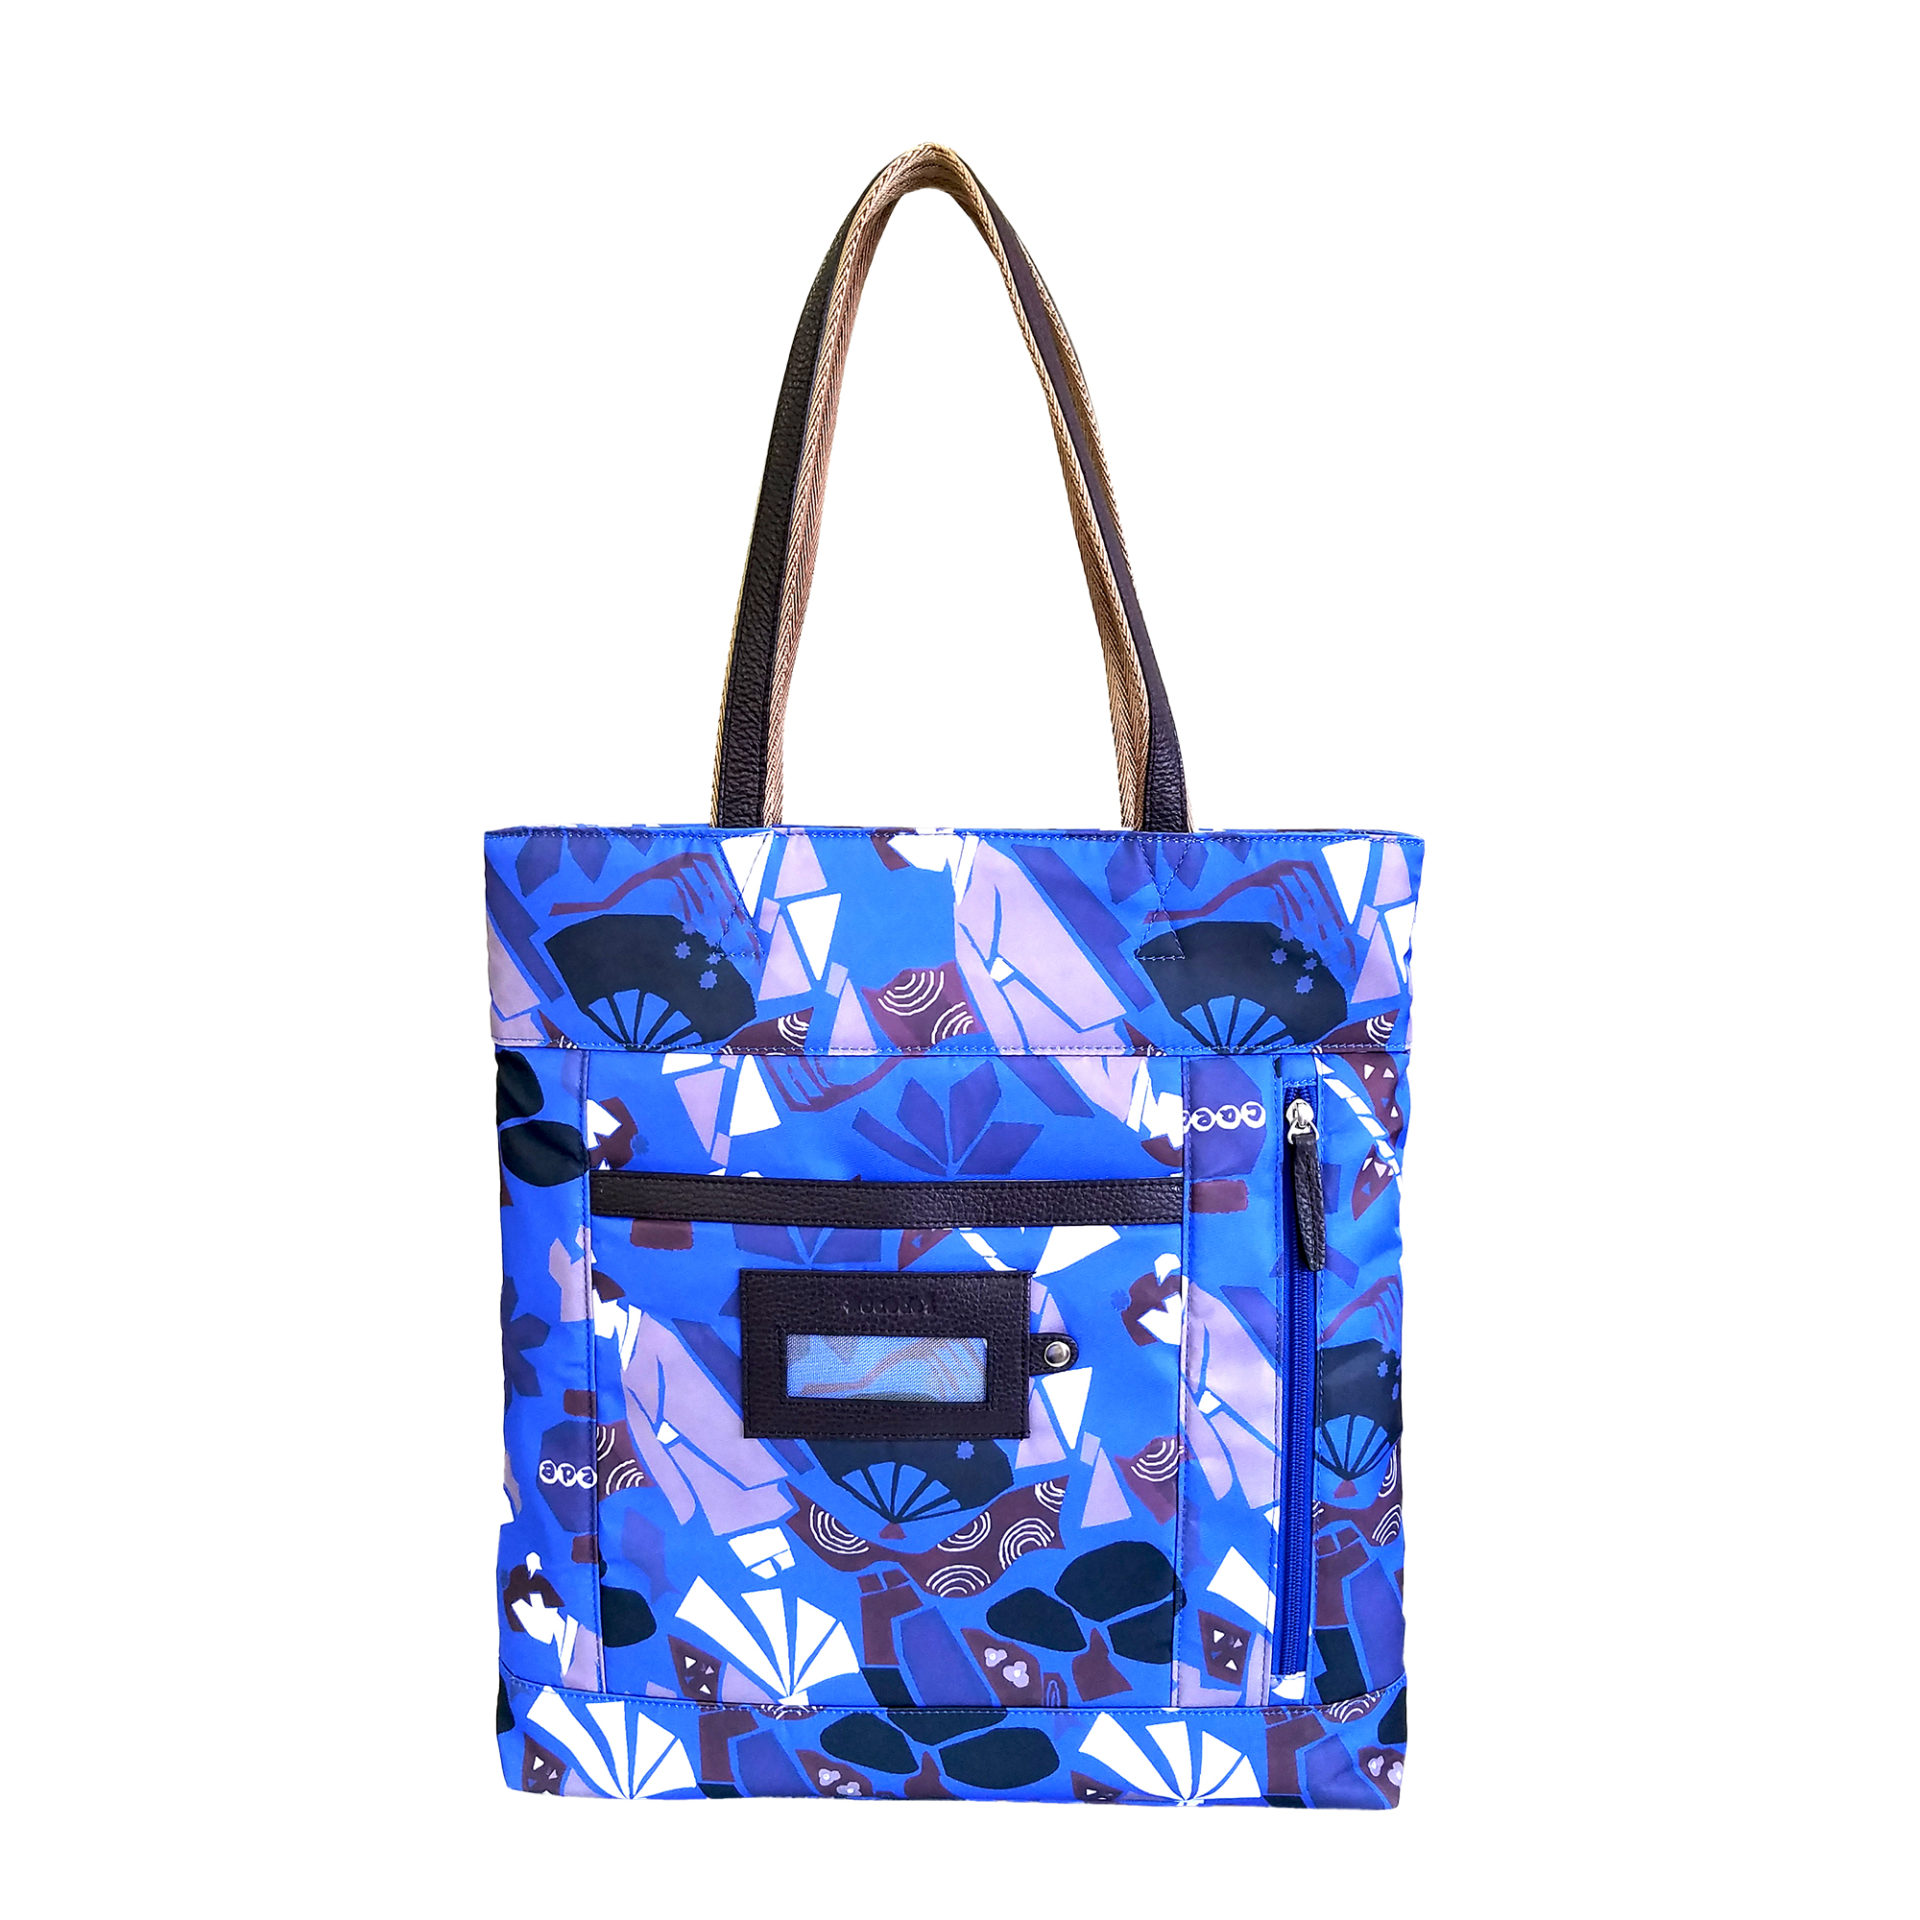 maiko puzzule etna tote blue